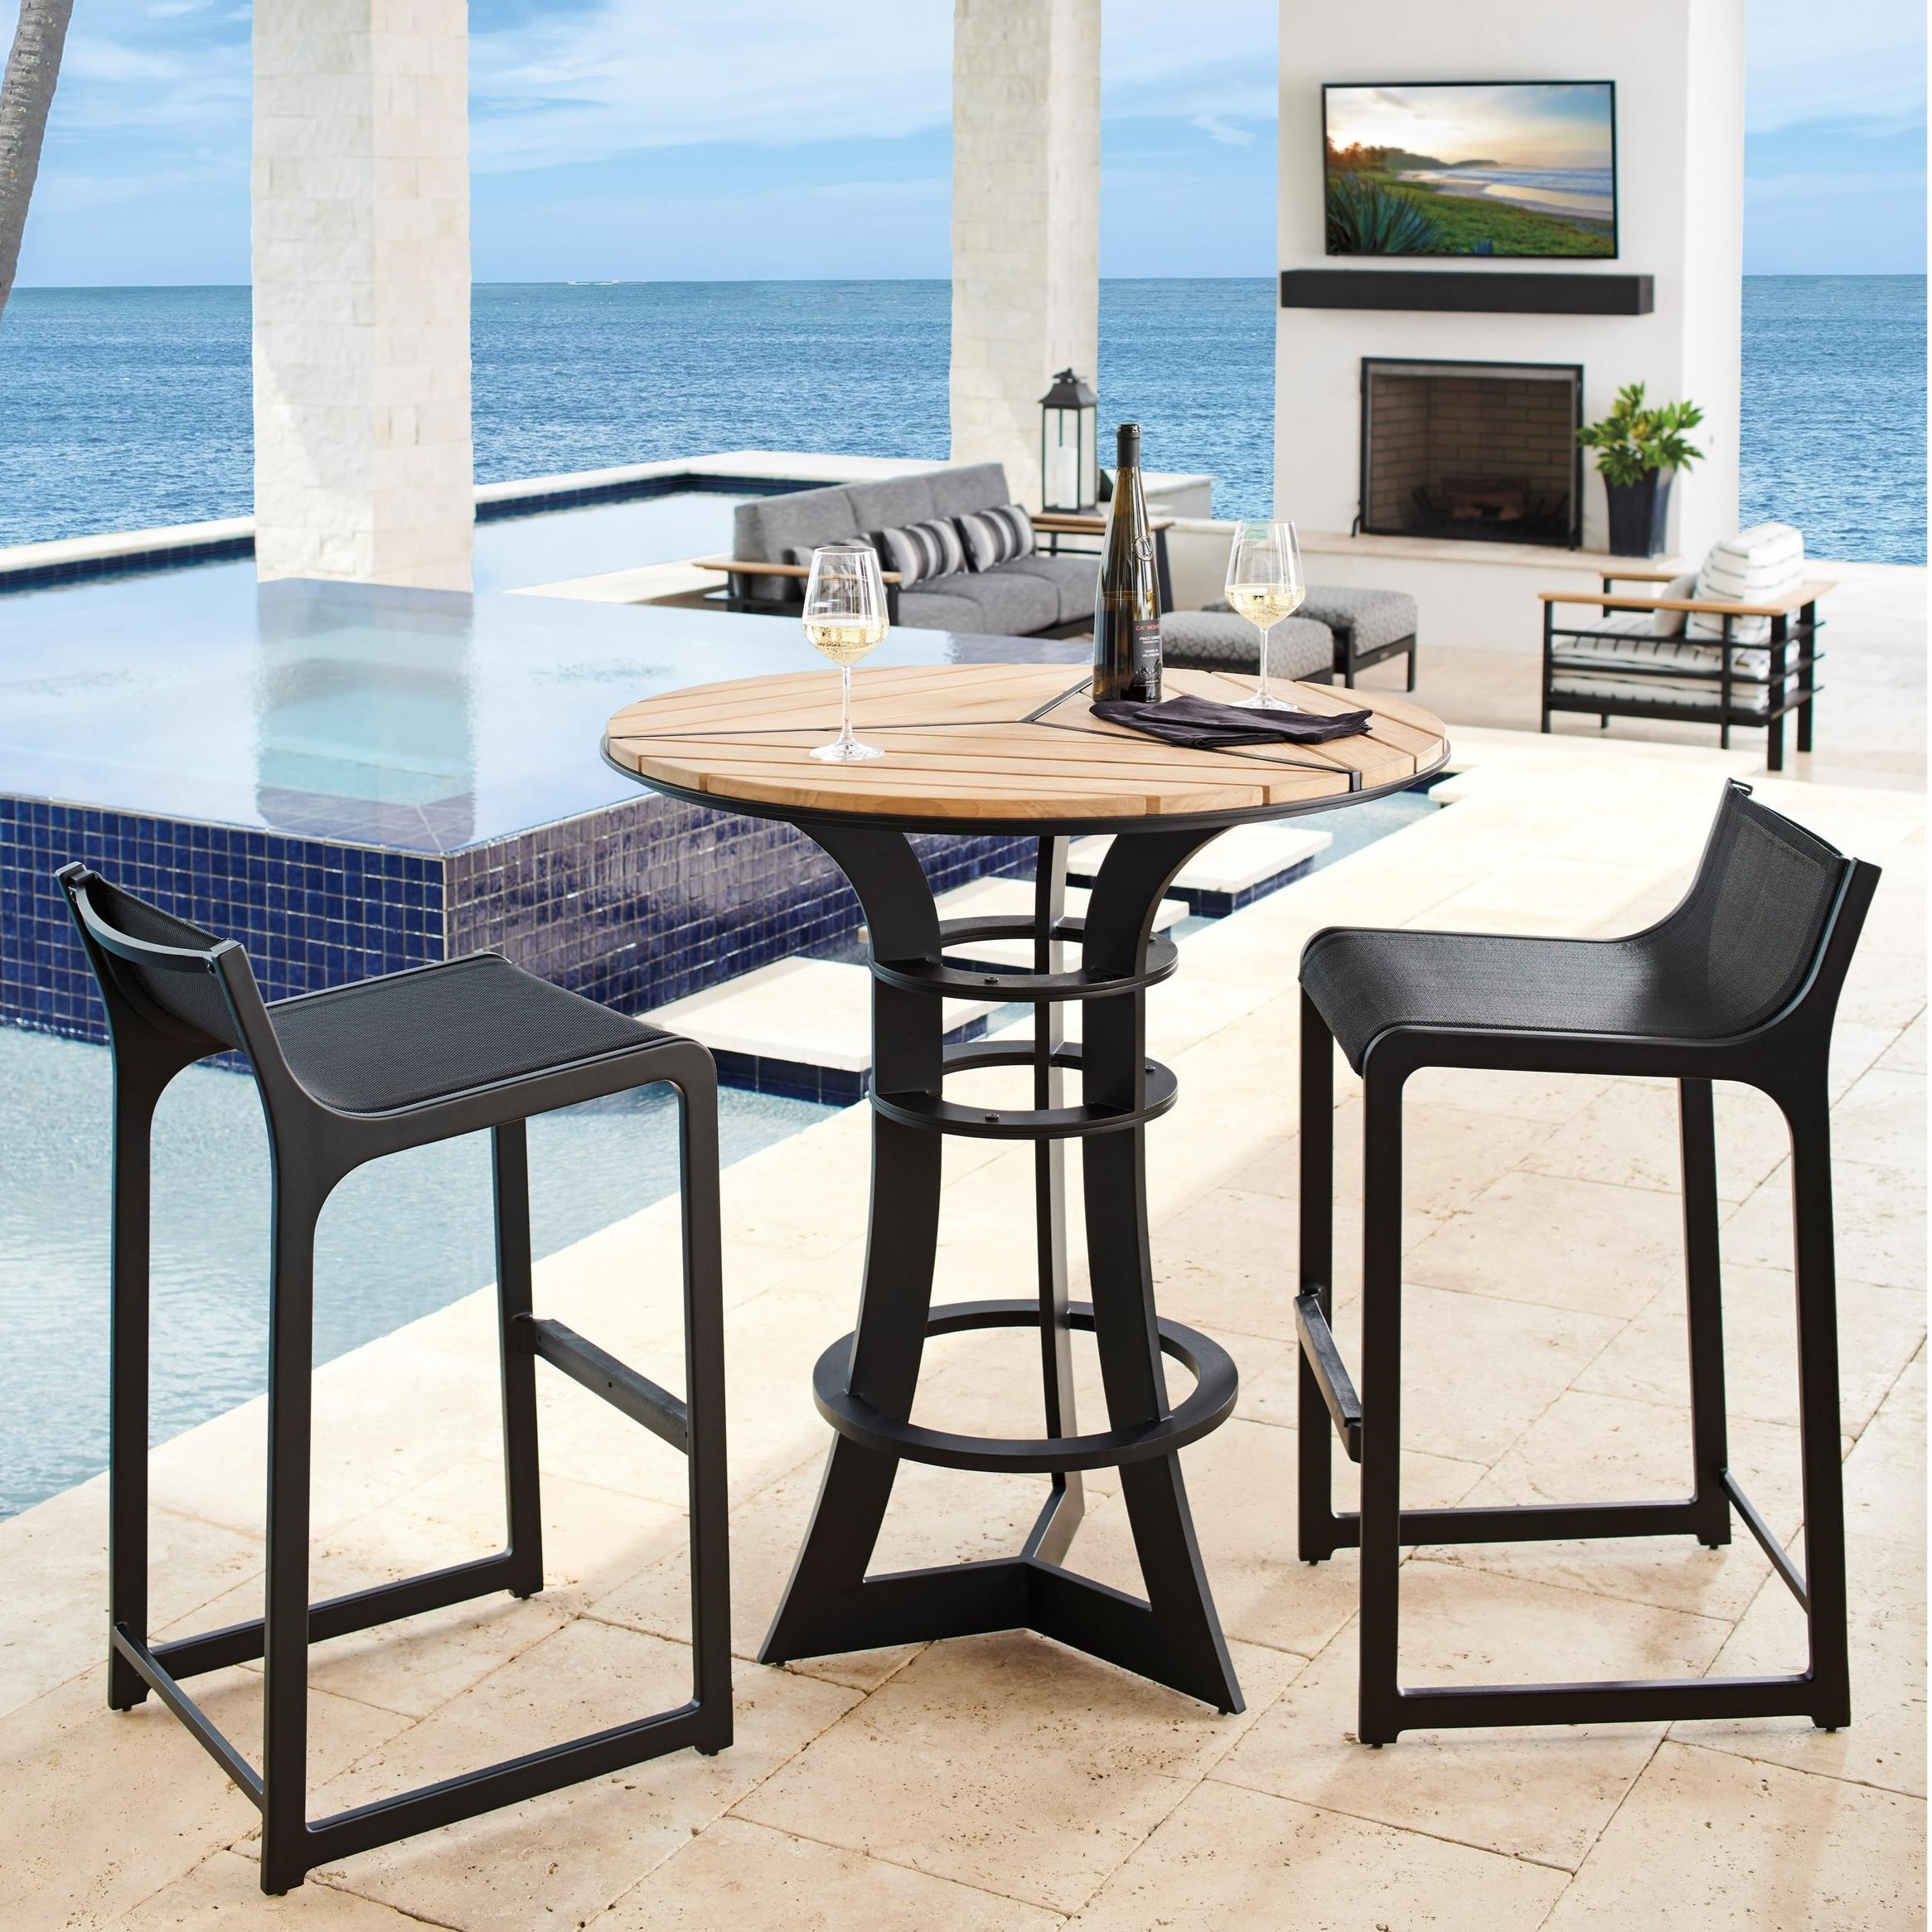 South Beach 3-Piece Outdoor Bistro Set w/ Bar Stools by Tommy Bahama Outdoor Living at Baer's Furniture